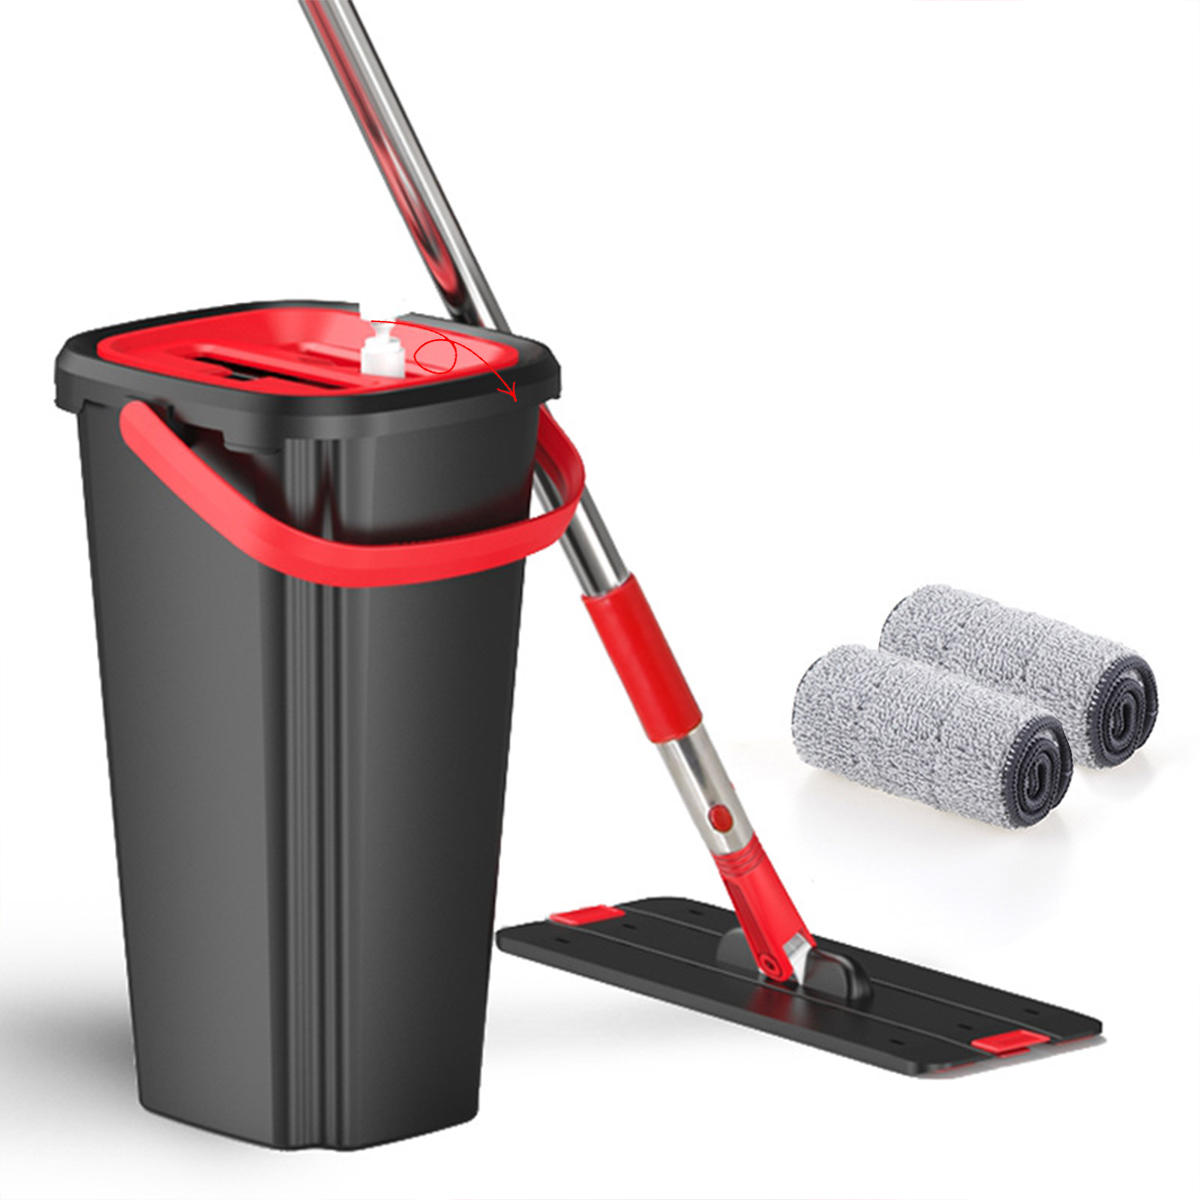 Mop Wash /& Dry Flat /& Bucket Cleaning System for all Floors